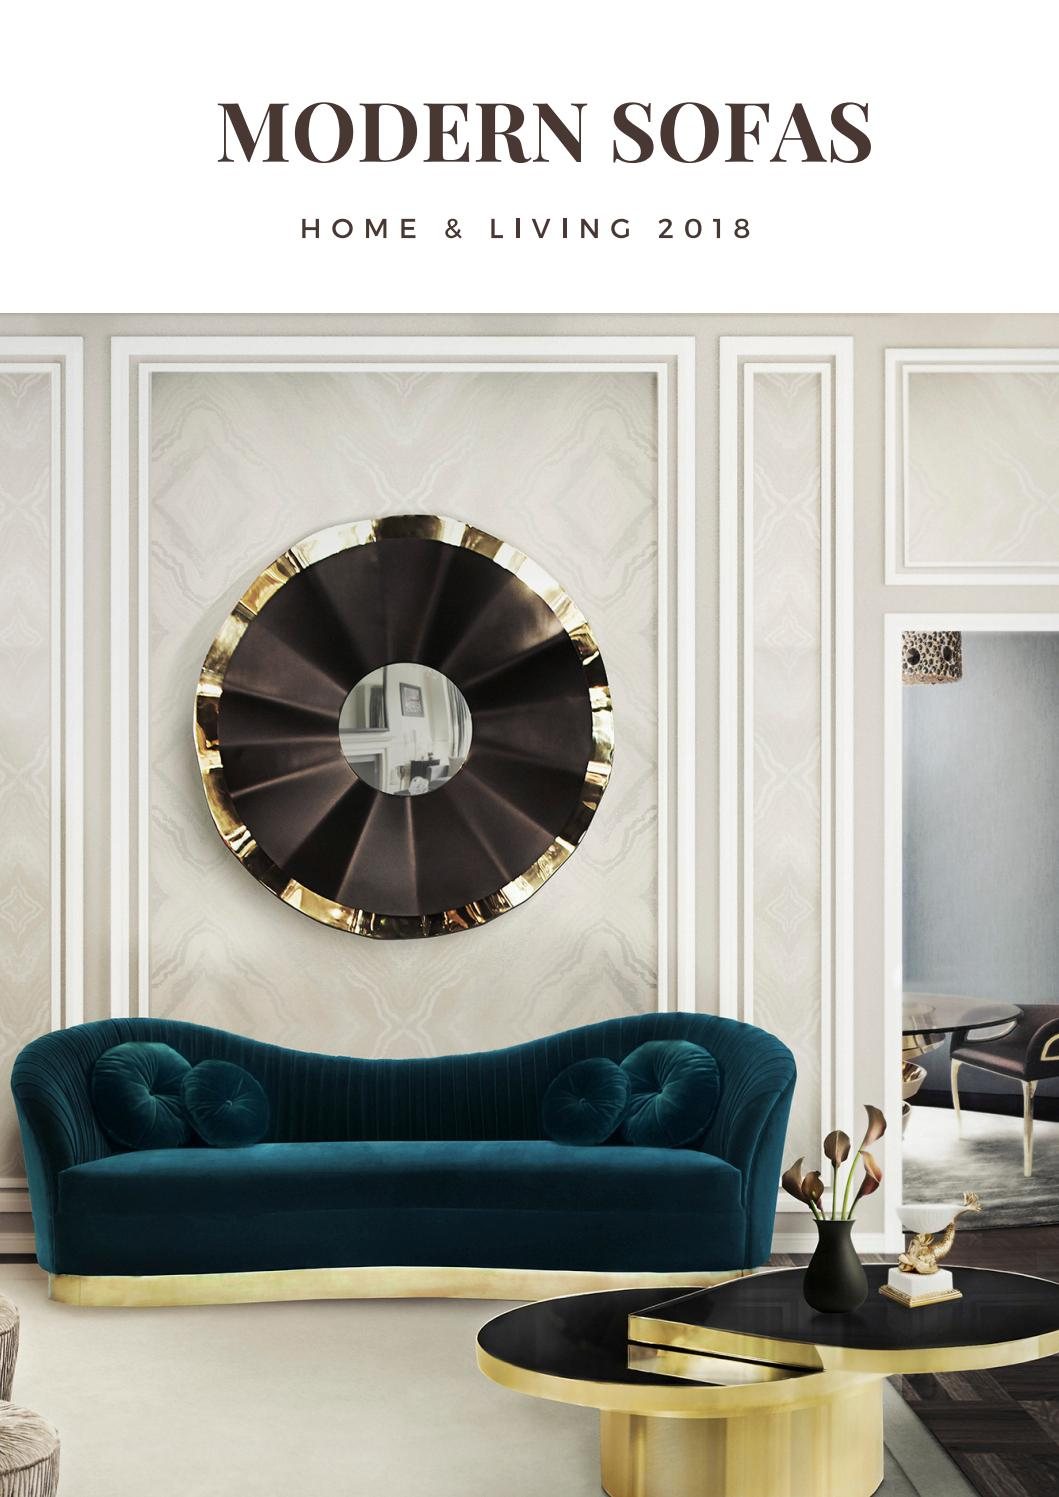 Modern sofas decor home ideas interior design trends 2018 luxury brands home living by covet house issuu